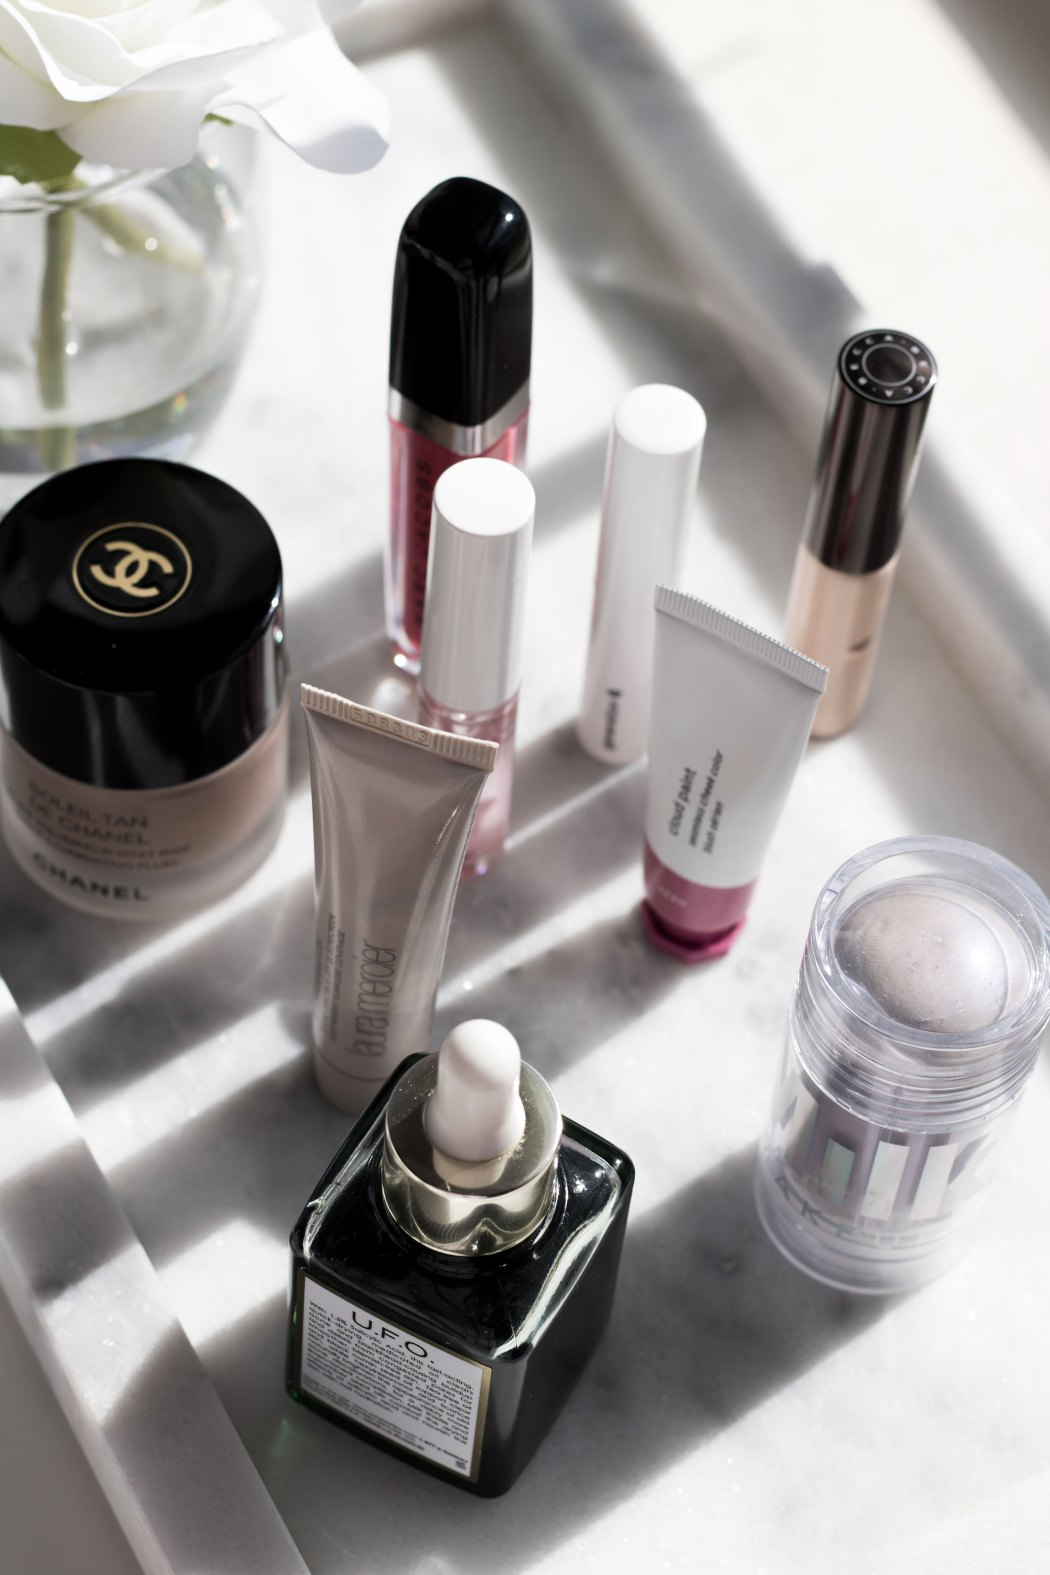 Beauty products putting a spring in my step